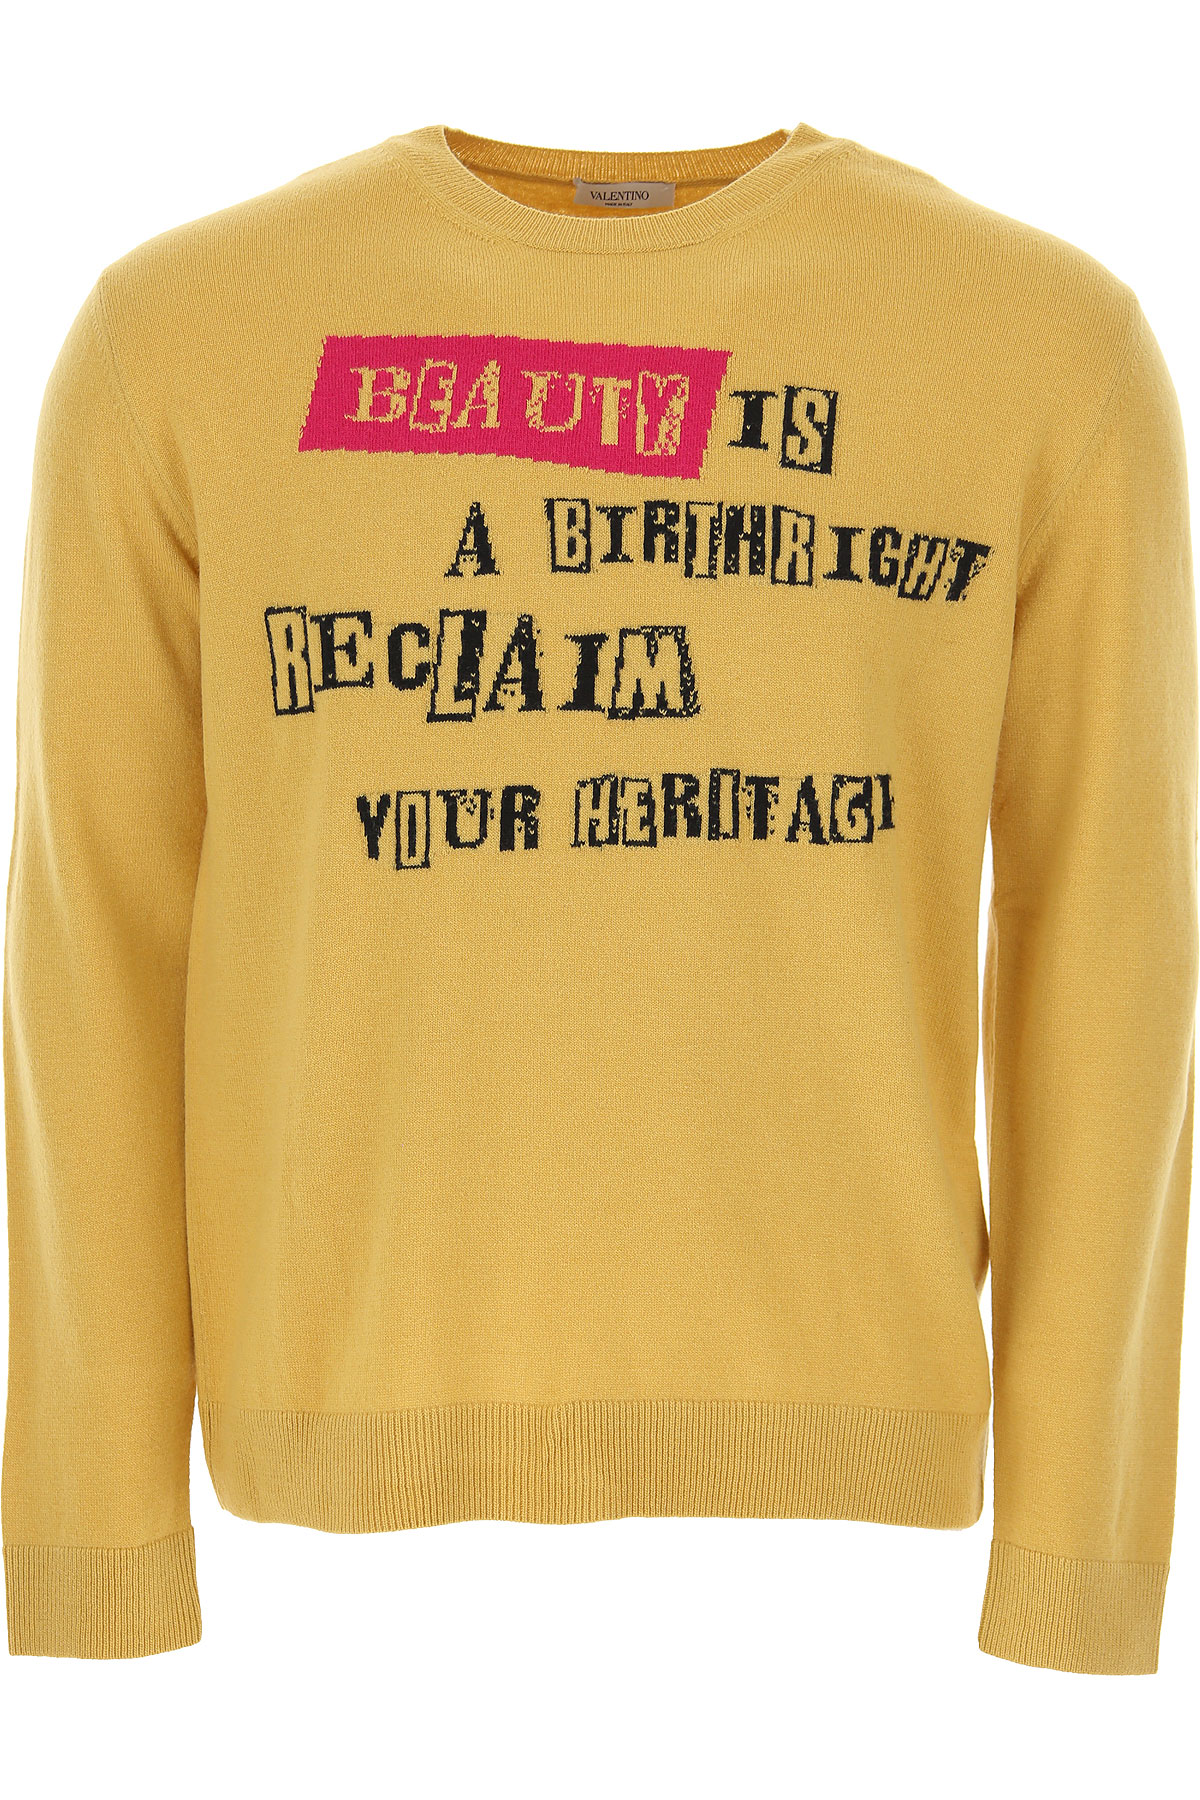 Valentino Sweater For Men Jumper On Sale In Outlet, Mustard, Virgin Wool, 2021, L S